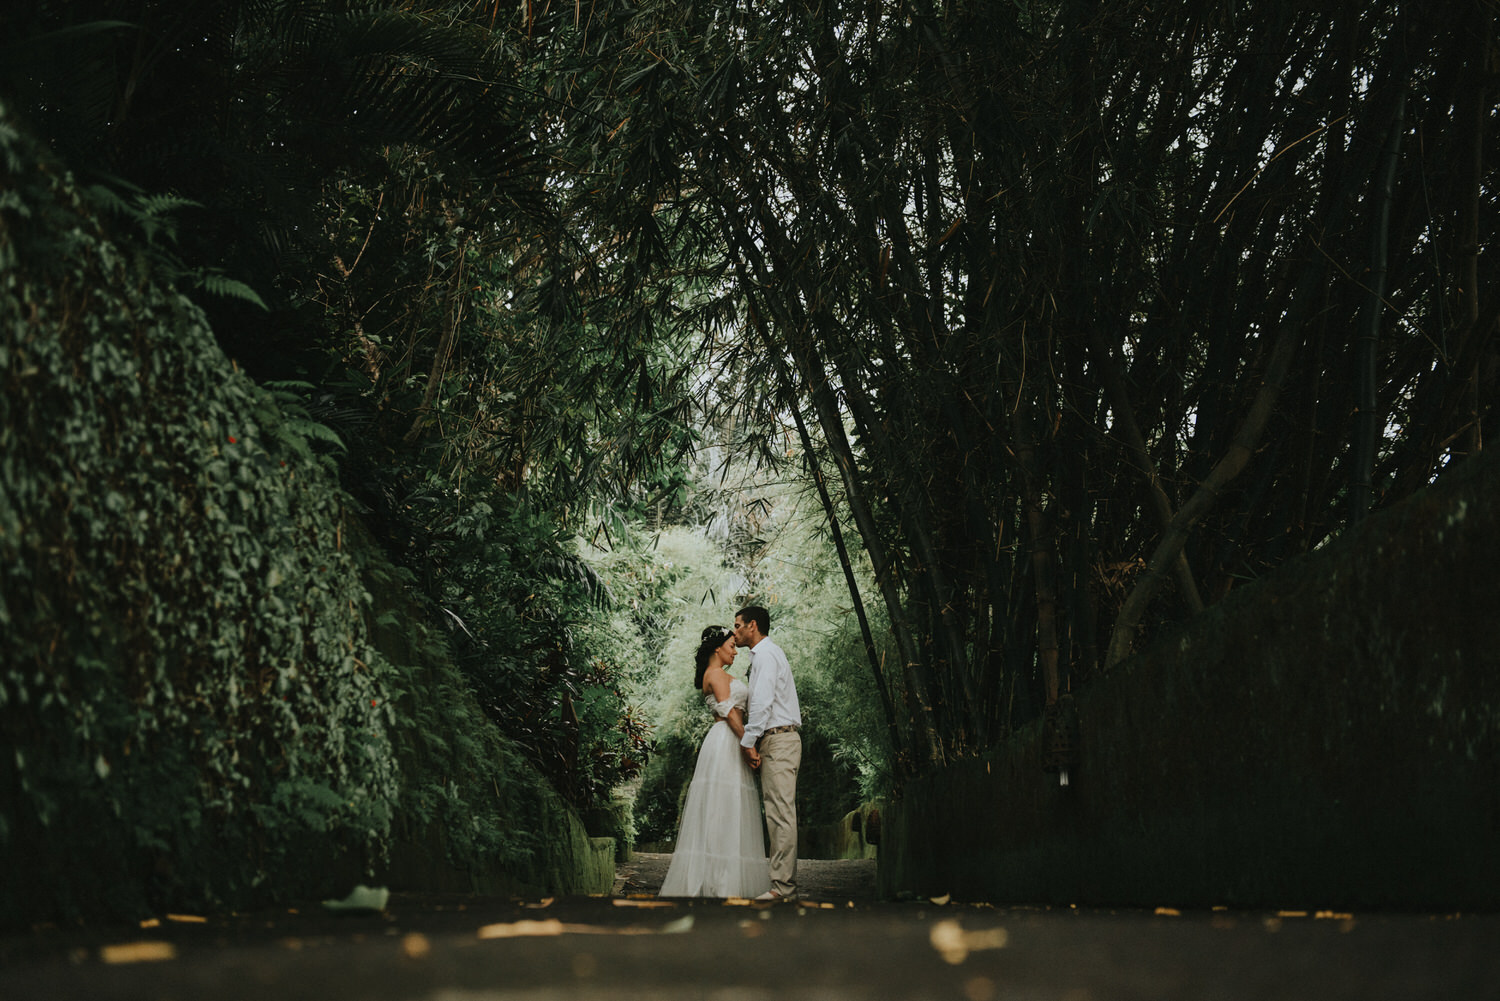 bali wedding - elopement - ubud wedding - diktatphotography - olga + Jason - 73